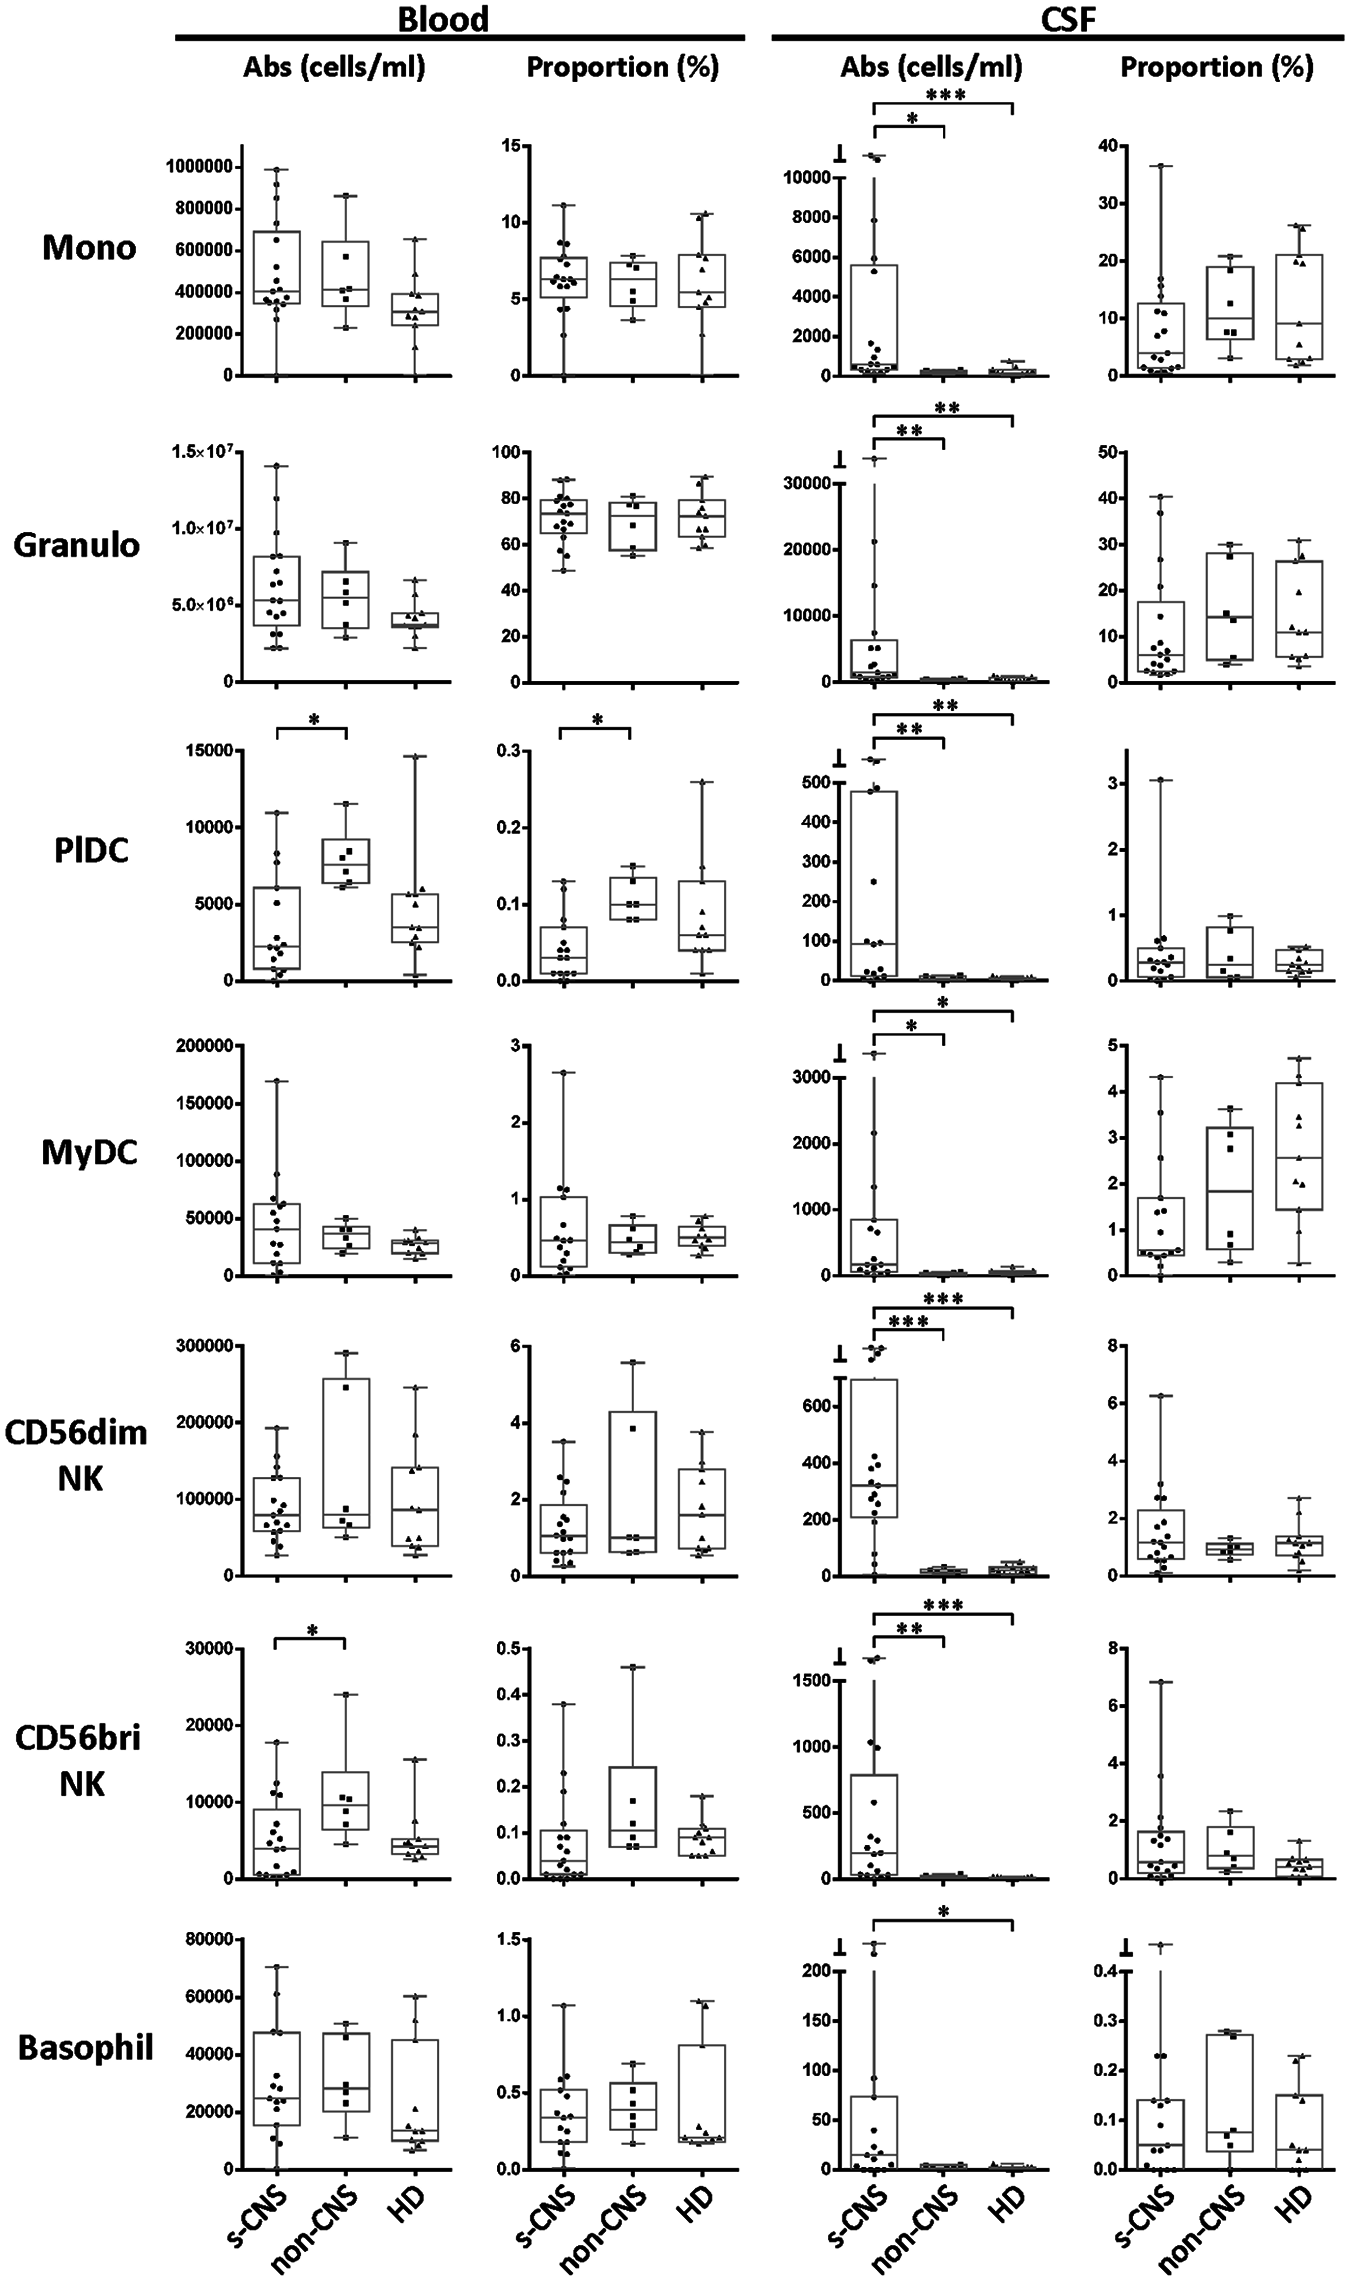 Immunophenotyping demonstrates increased absolute CSF cytotoxic (CD56dim) and immunoregulatory (CD56bright) NK cell populations, monocytes (Mono), and both myeloid (MyDC) and plasmacytoid (PlDC) dendritic cells in CSF of s-CNS patients.